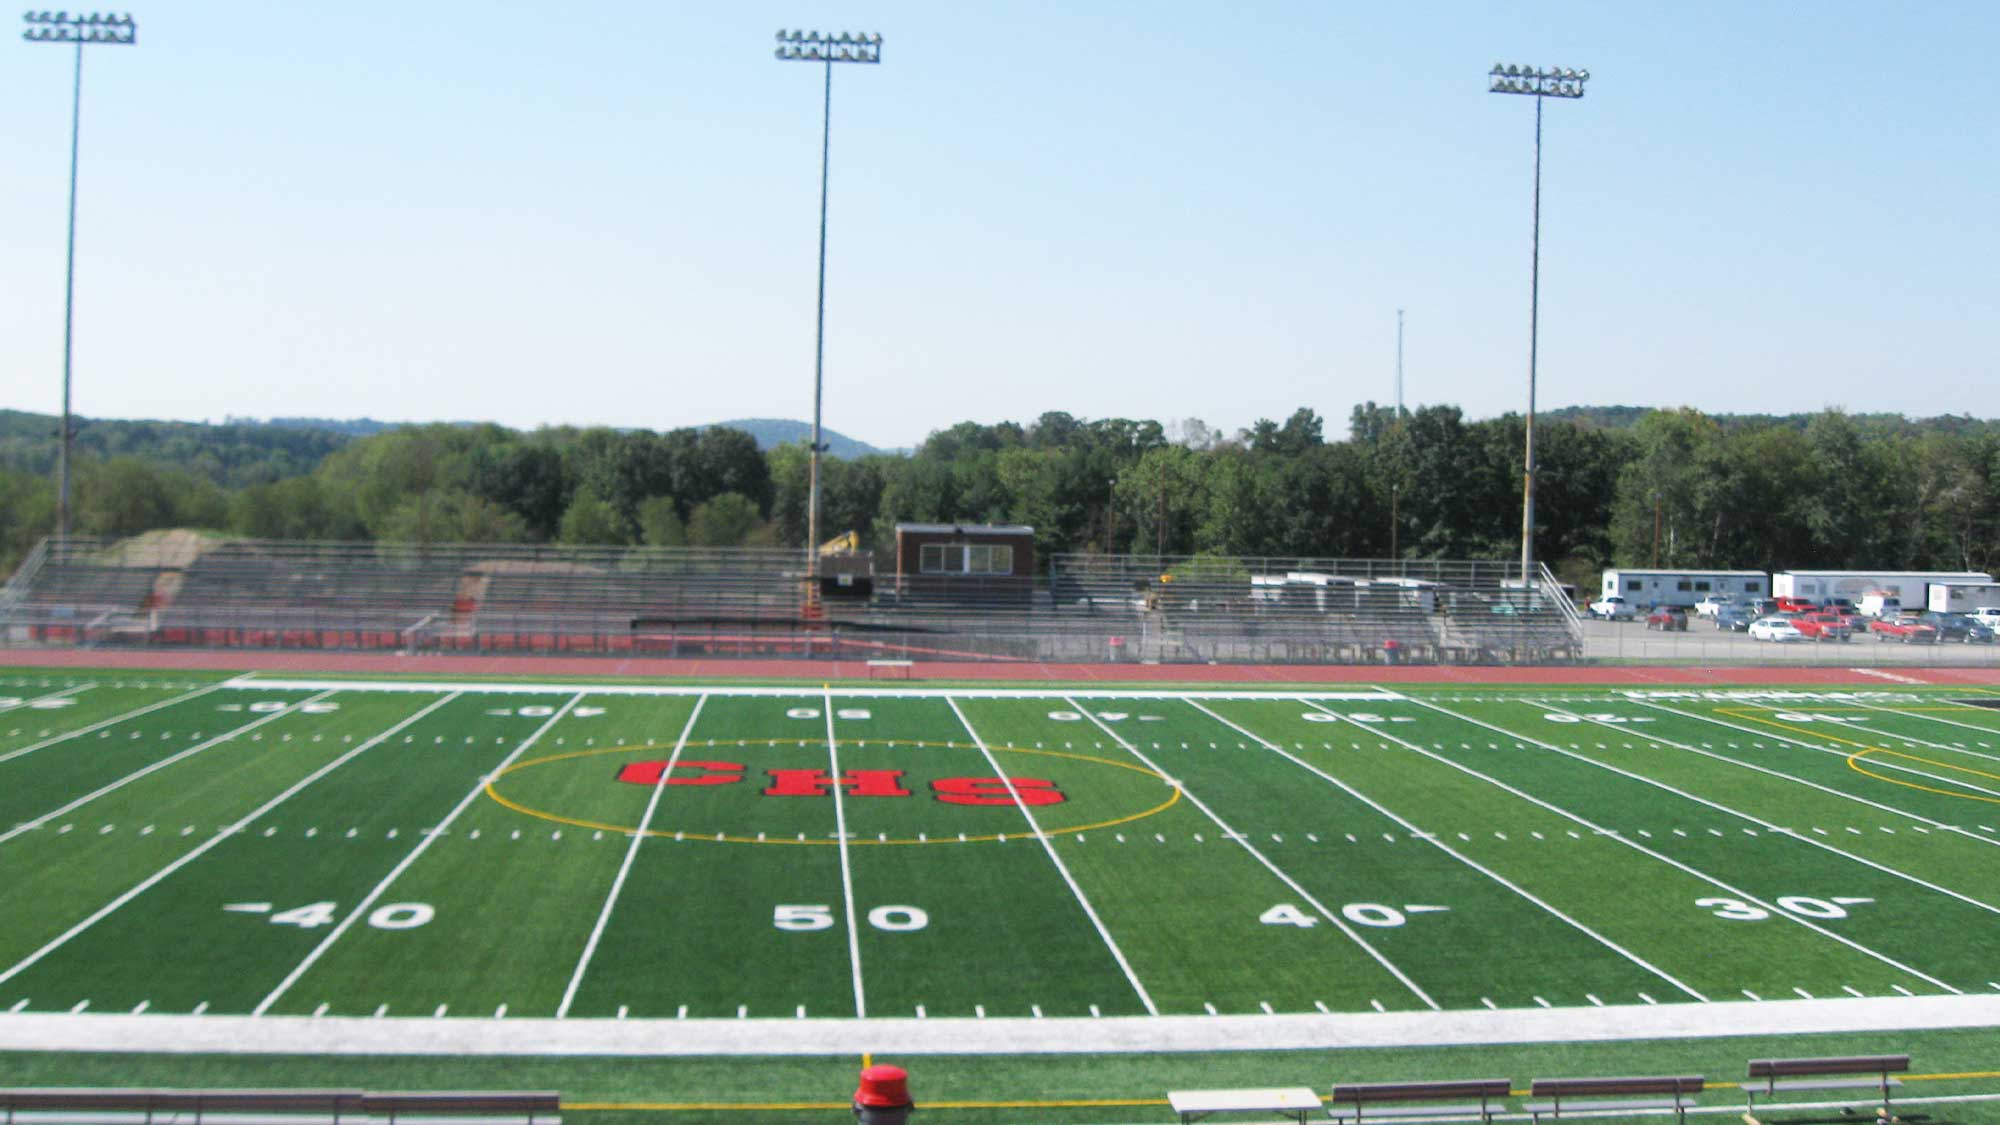 CLEARFIELD AREA ATHLETIC COMPLEX